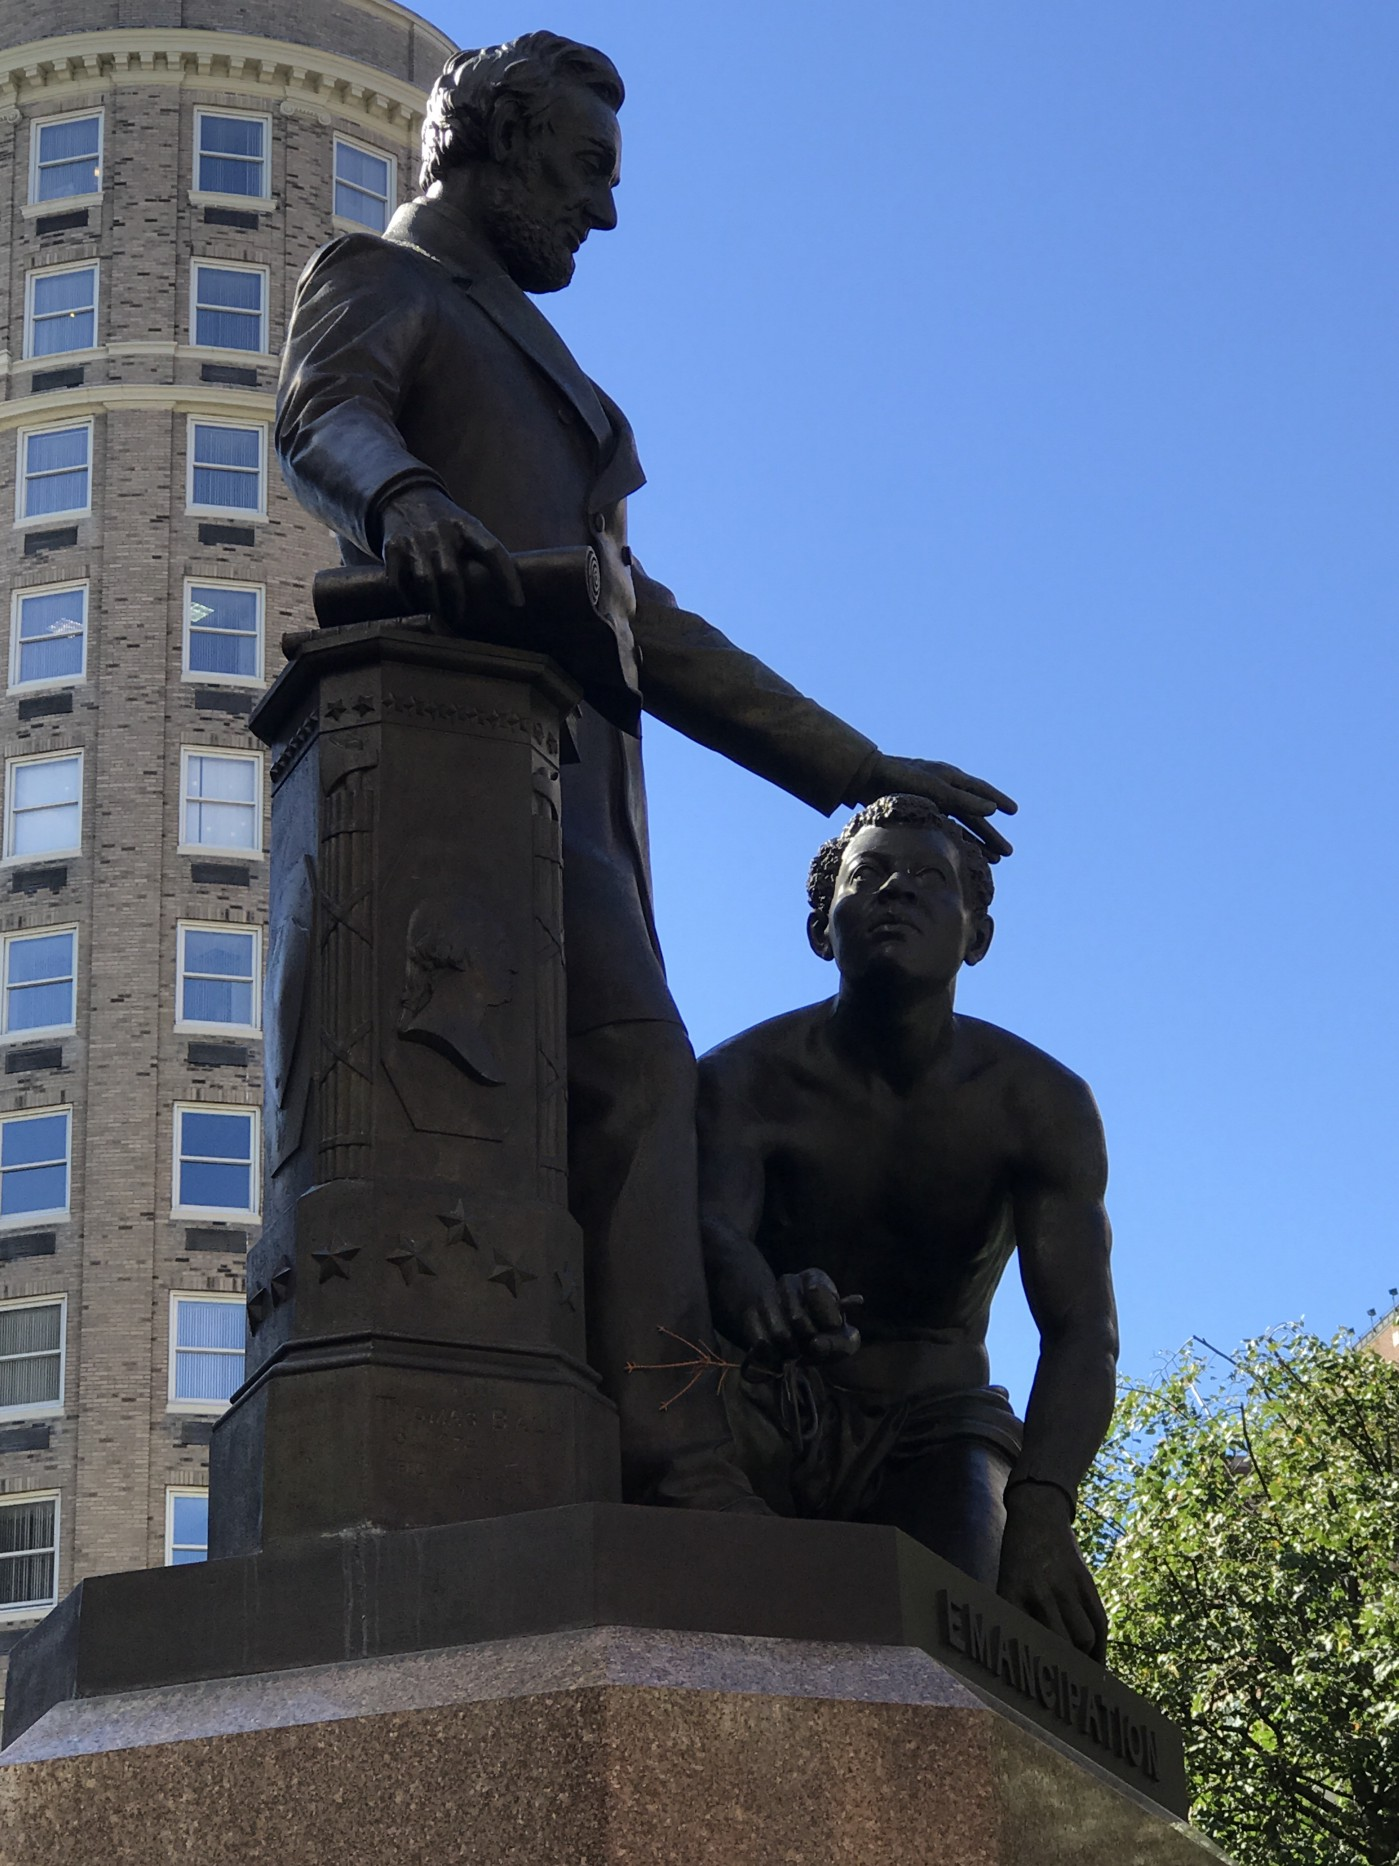 A monument to white supremacy stands uncontested in our own back yard